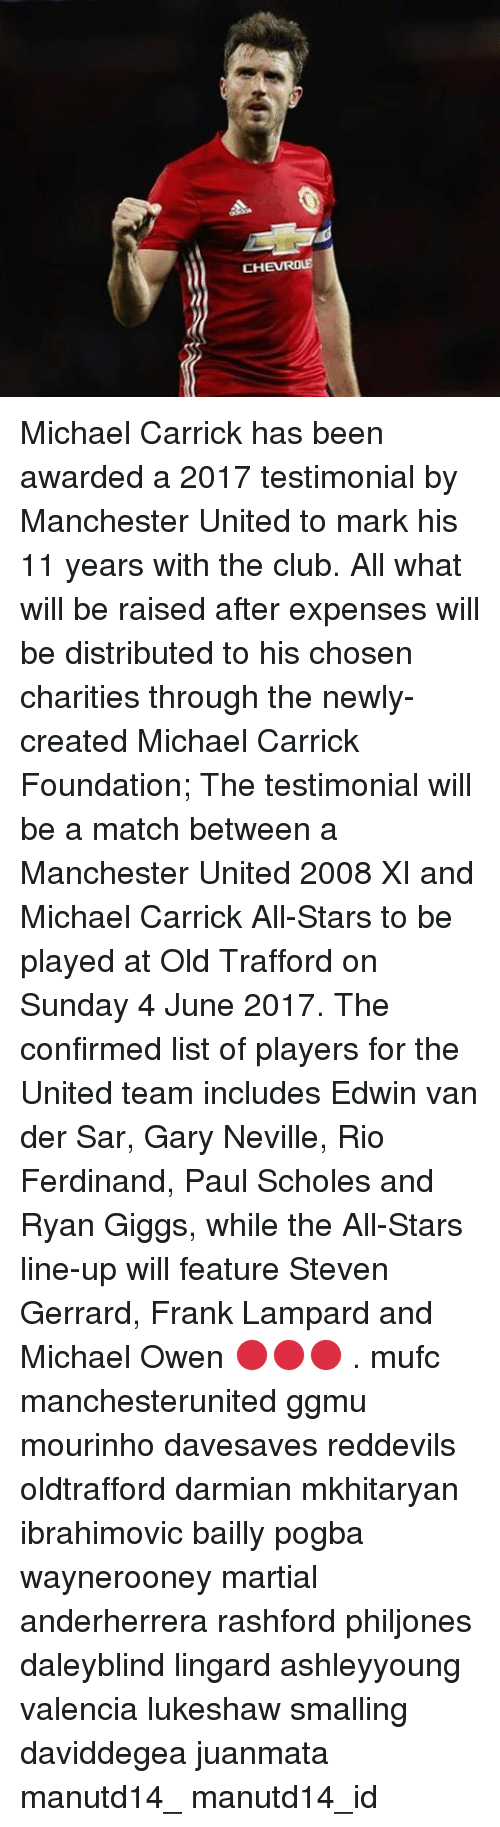 Memes, Steven Gerrard, and Frank Lampard: CHE ROLE Michael Carrick has been awarded a 2017 testimonial by Manchester United to mark his 11 years with the club. All what will be raised after expenses will be distributed to his chosen charities through the newly-created Michael Carrick Foundation; The testimonial will be a match between a Manchester United 2008 XI and Michael Carrick All-Stars to be played at Old Trafford on Sunday 4 June 2017. The confirmed list of players for the United team includes Edwin van der Sar, Gary Neville, Rio Ferdinand, Paul Scholes and Ryan Giggs, while the All-Stars line-up will feature Steven Gerrard, Frank Lampard and Michael Owen 🔴🔴🔴 . mufc manchesterunited ggmu mourinho davesaves reddevils oldtrafford darmian mkhitaryan ibrahimovic bailly pogba waynerooney martial anderherrera rashford philjones daleyblind lingard ashleyyoung valencia lukeshaw smalling daviddegea juanmata manutd14_ manutd14_id